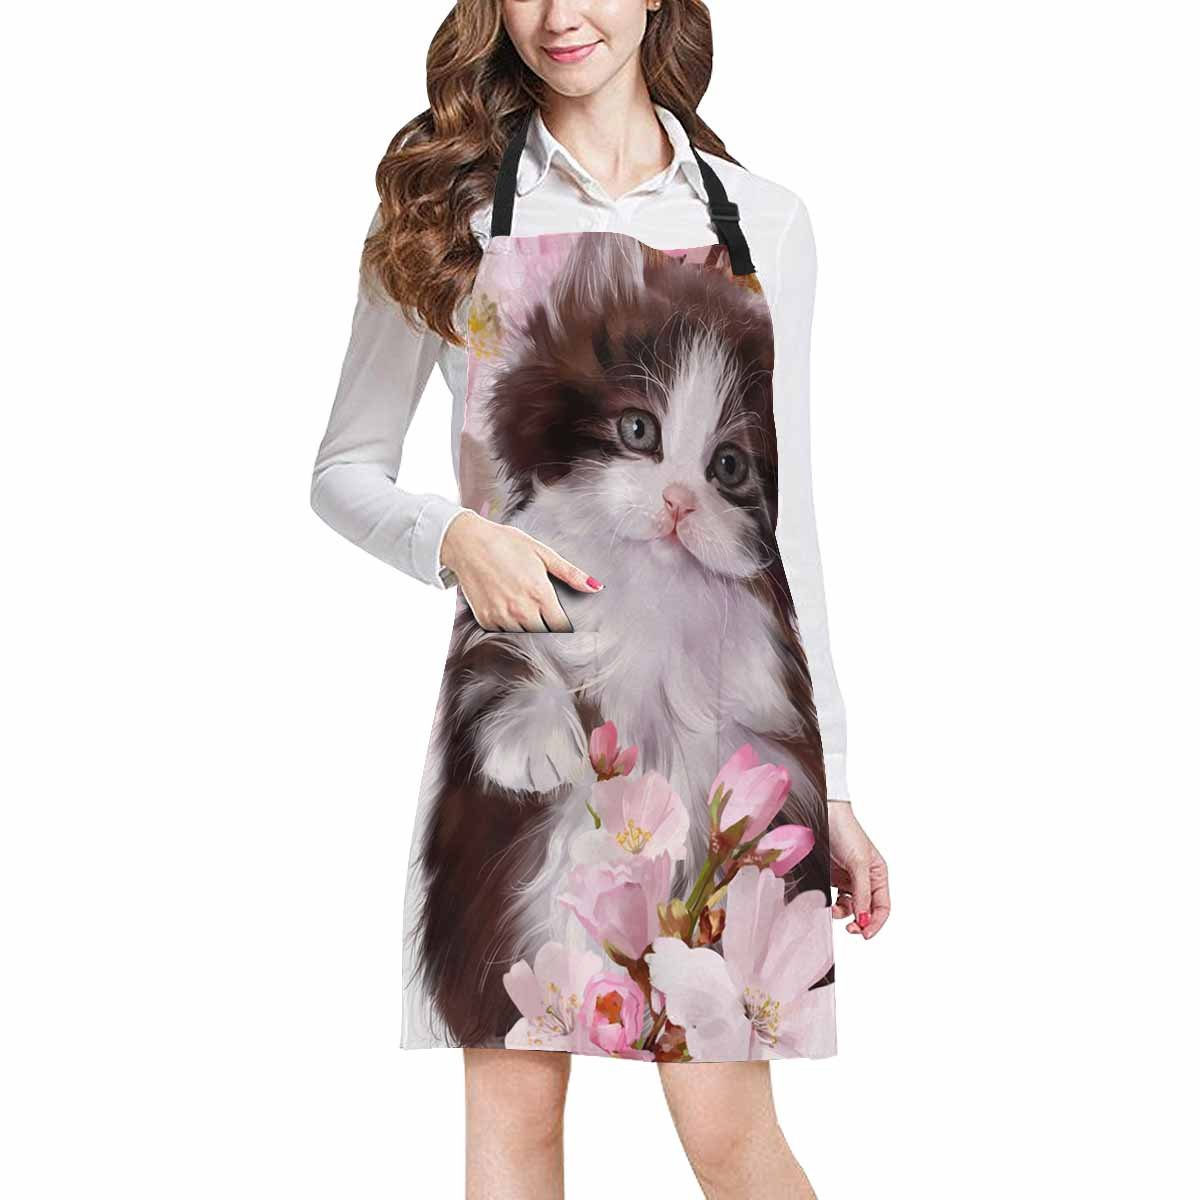 InterestPrint Large Group of Cats Kitten Funny Animal Chef Aprons Professional Kitchen Chef Bib Apron with Pockets Adjustable Neck Strap, Plus Size